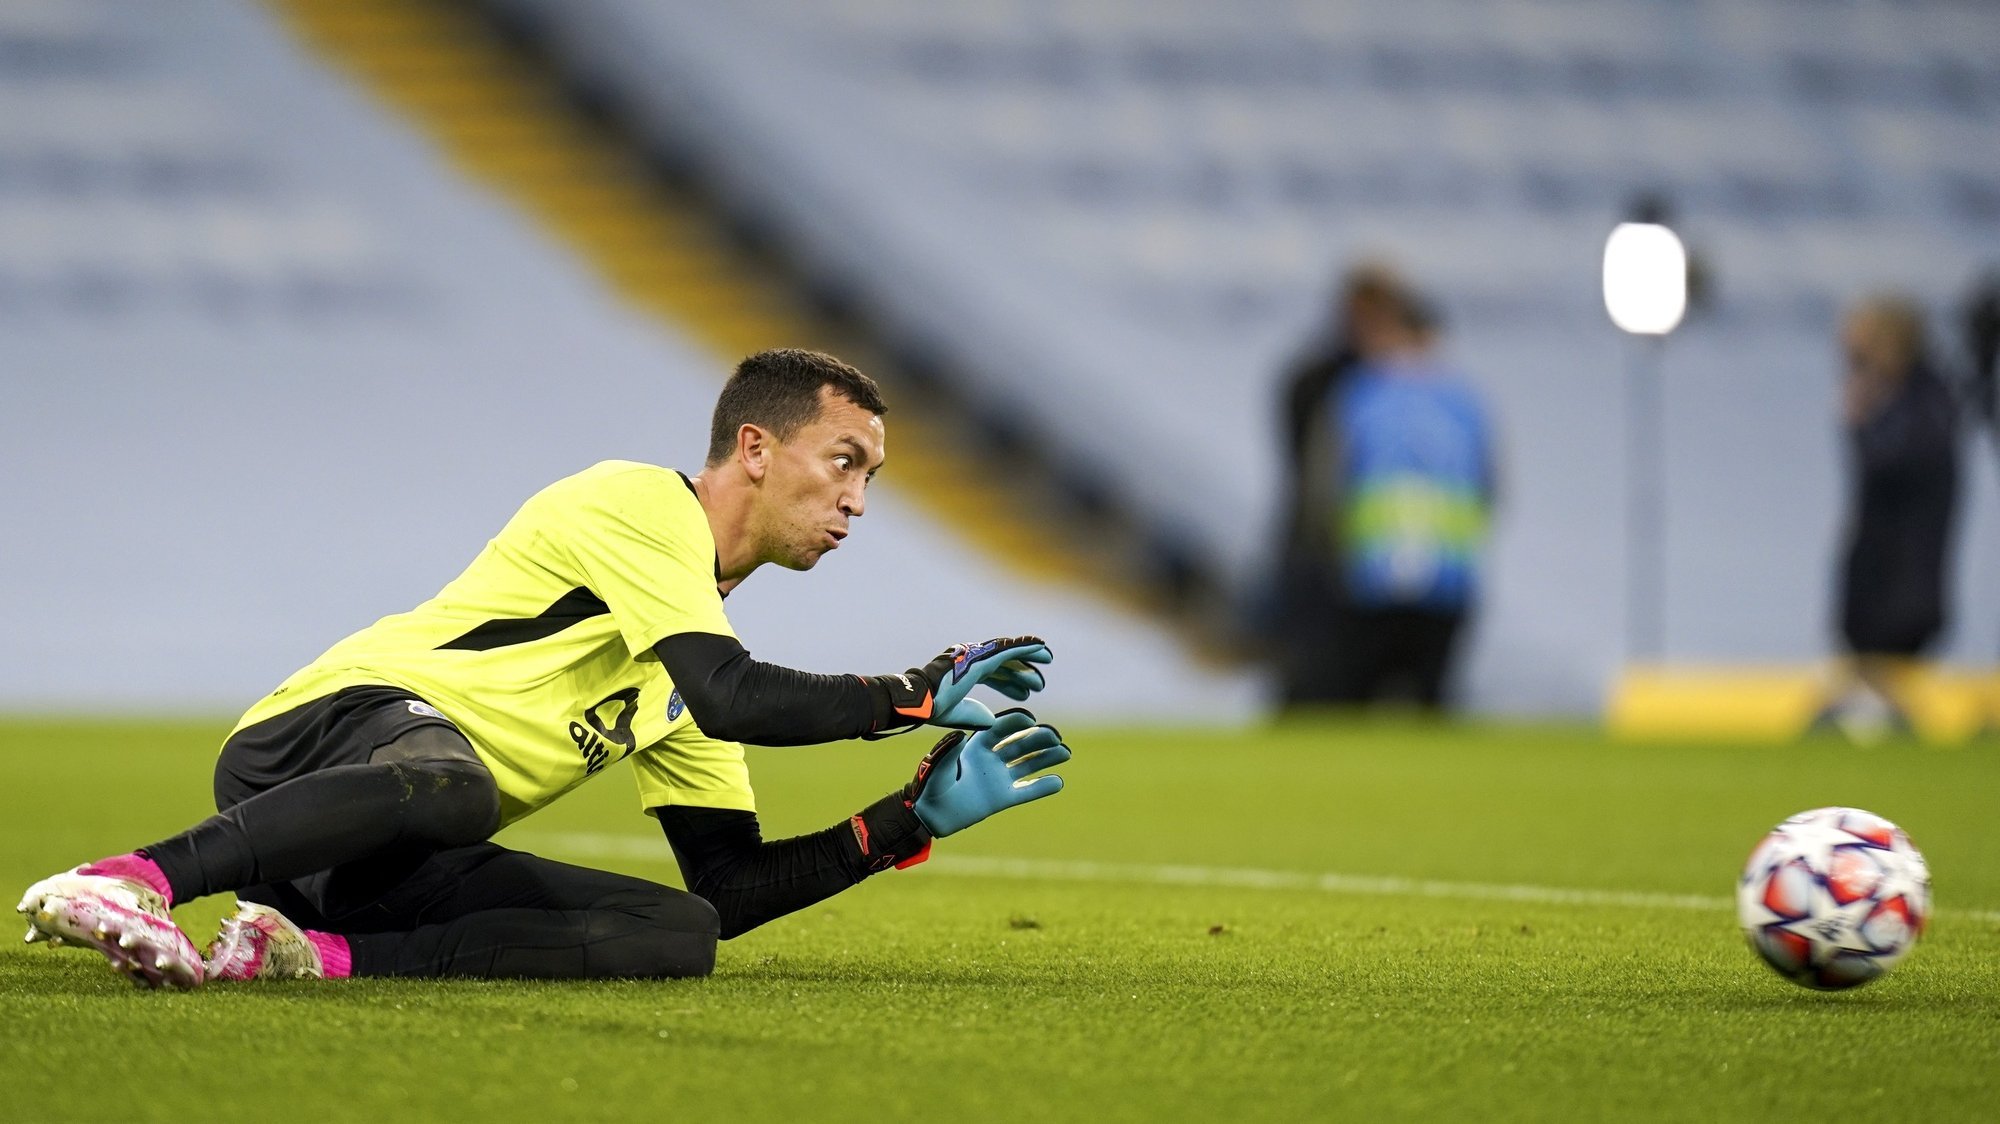 epa08762850 Goalkeeper Agustin Marchesin of Porto warms up prior to the UEFA Champions League group C soccer match between Manchester City and FC Porto in Manchester, Britain, 21 October 2020.  EPA/Tim Keeton / POOL